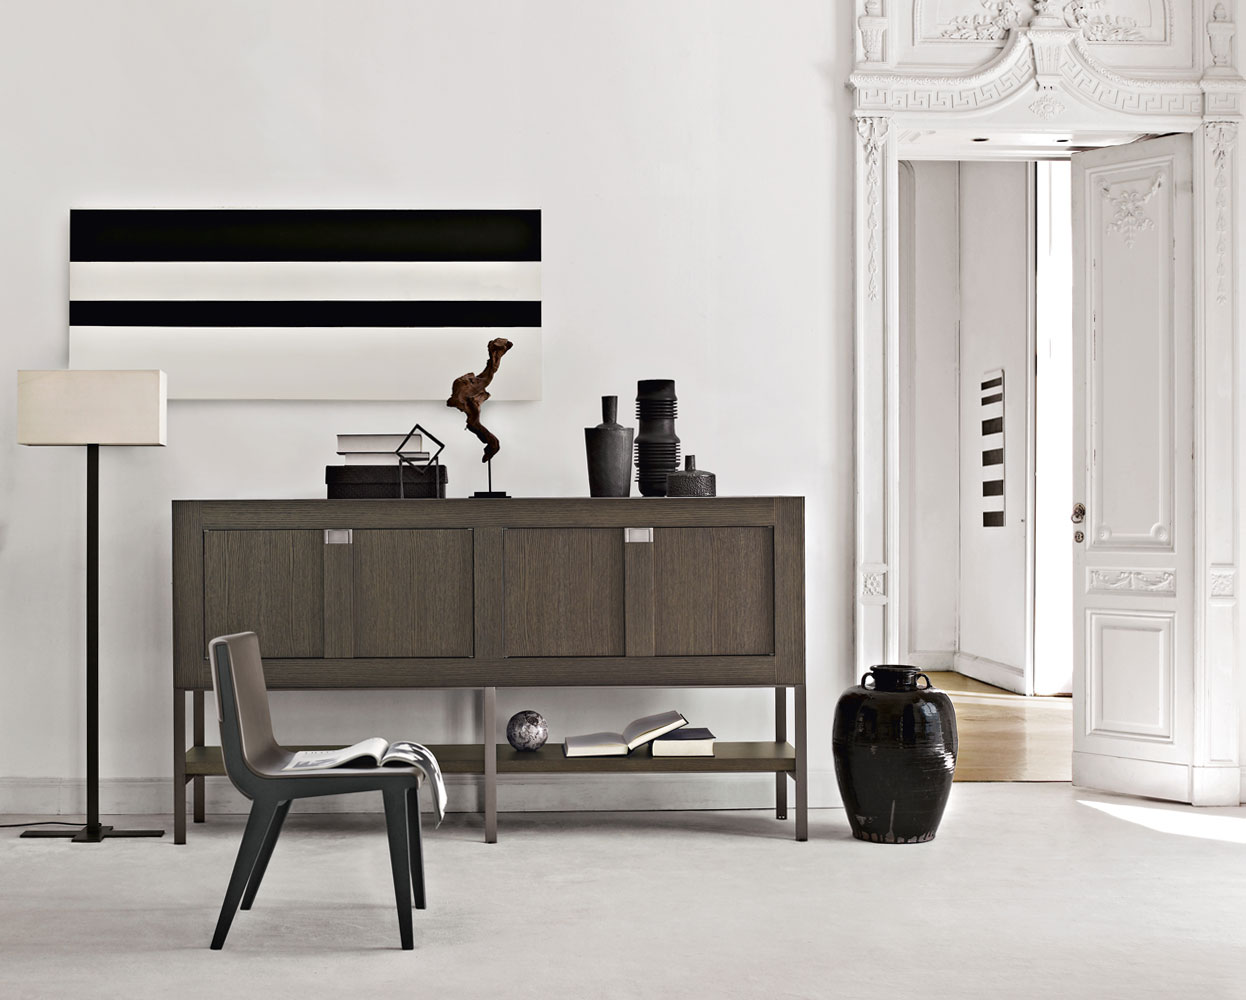 maxalto b b italia eracle sideboard buy from campbell watson uk. Black Bedroom Furniture Sets. Home Design Ideas